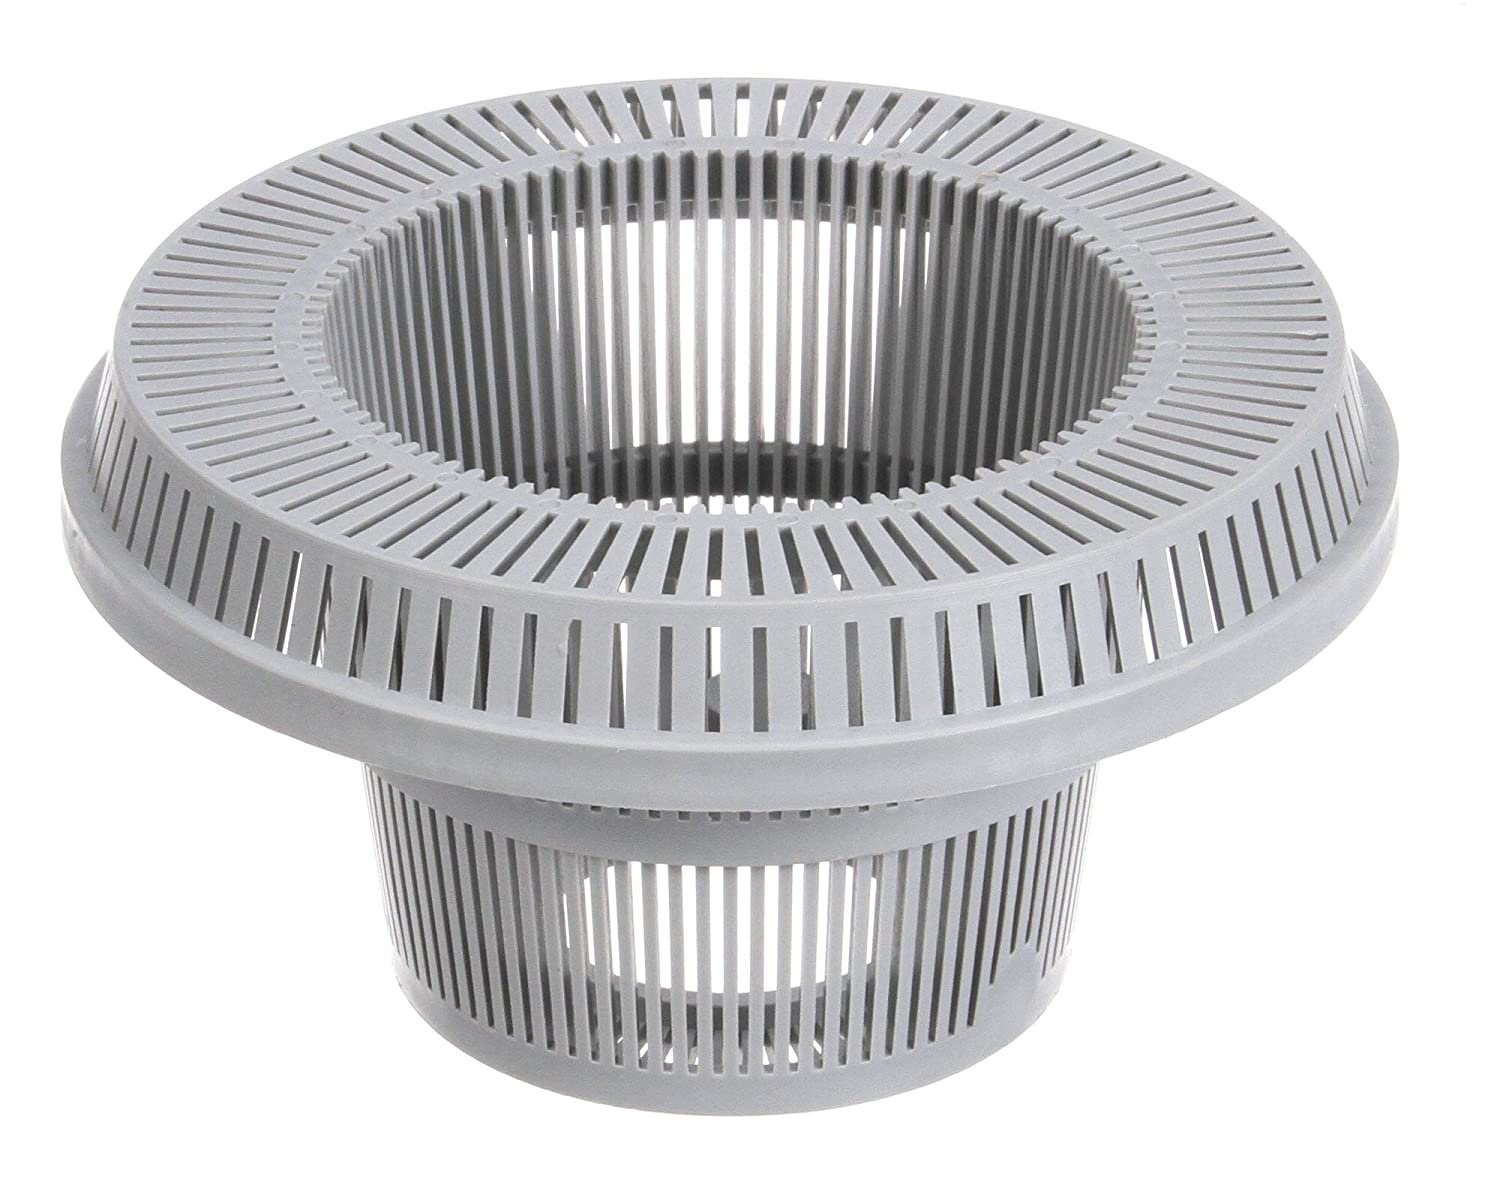 Champion - Moyer Diebel 109462 Sump Excellence Filter trust